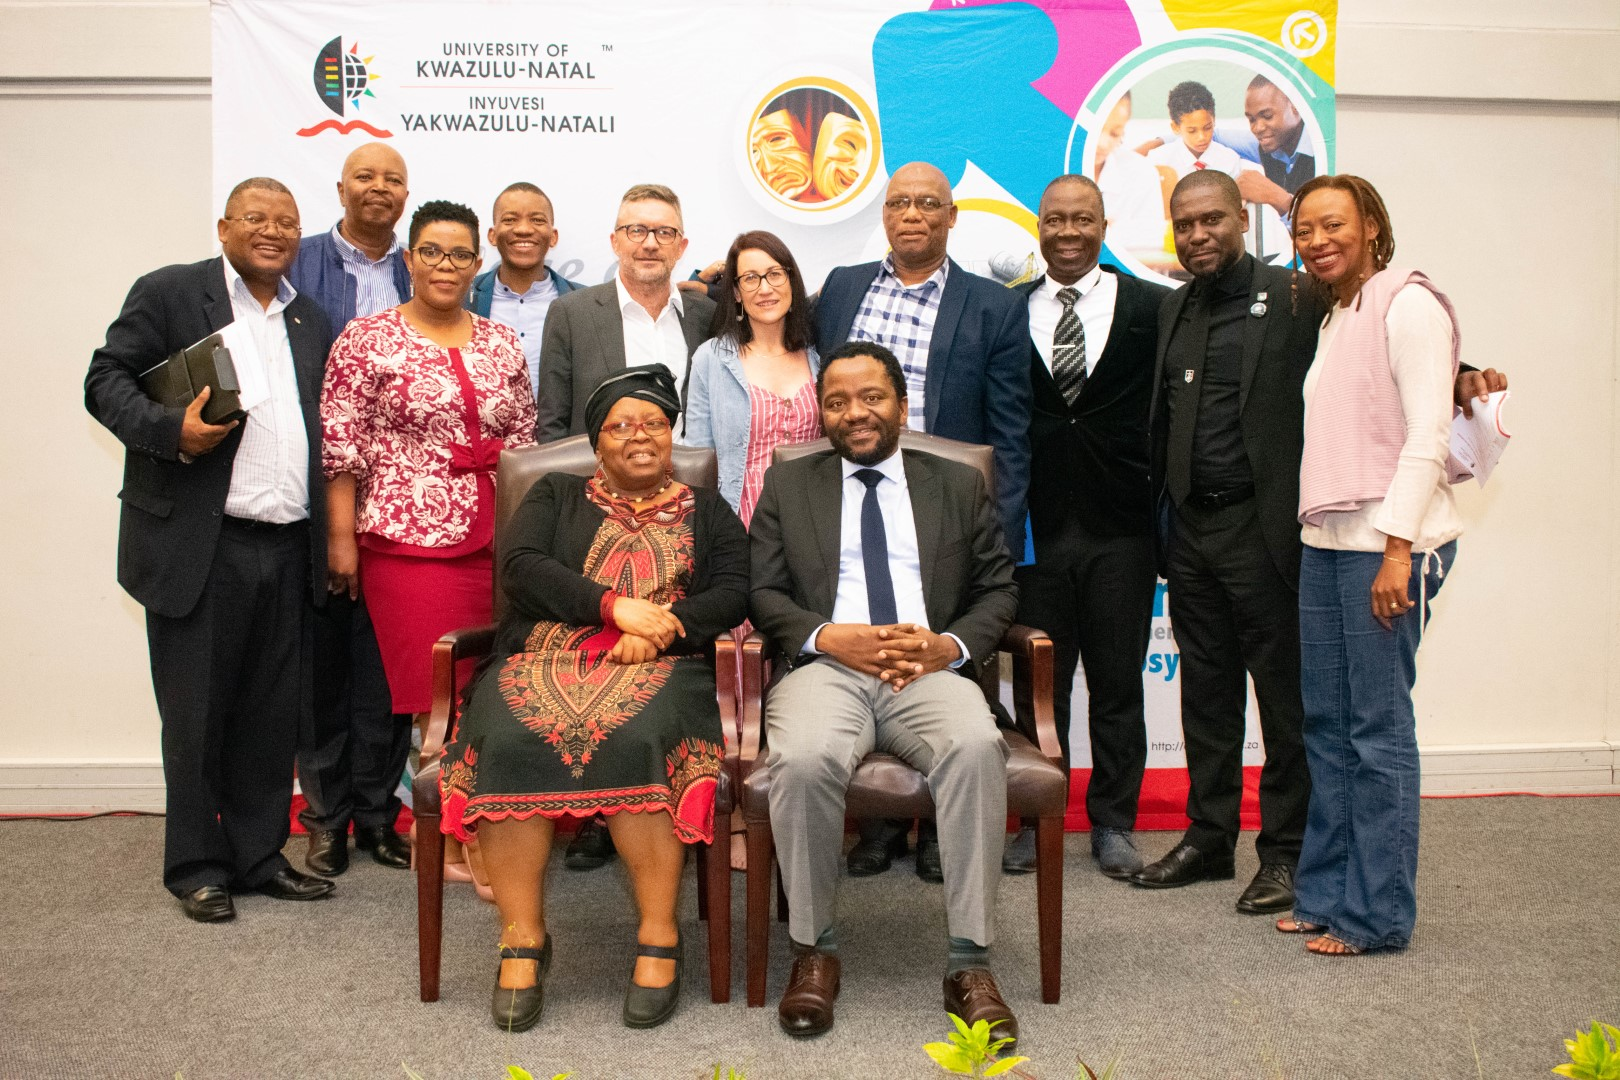 Dr Bongani Ngqulunga (seated right) with UKZN staff members at the John Dube Memorial Lecture.